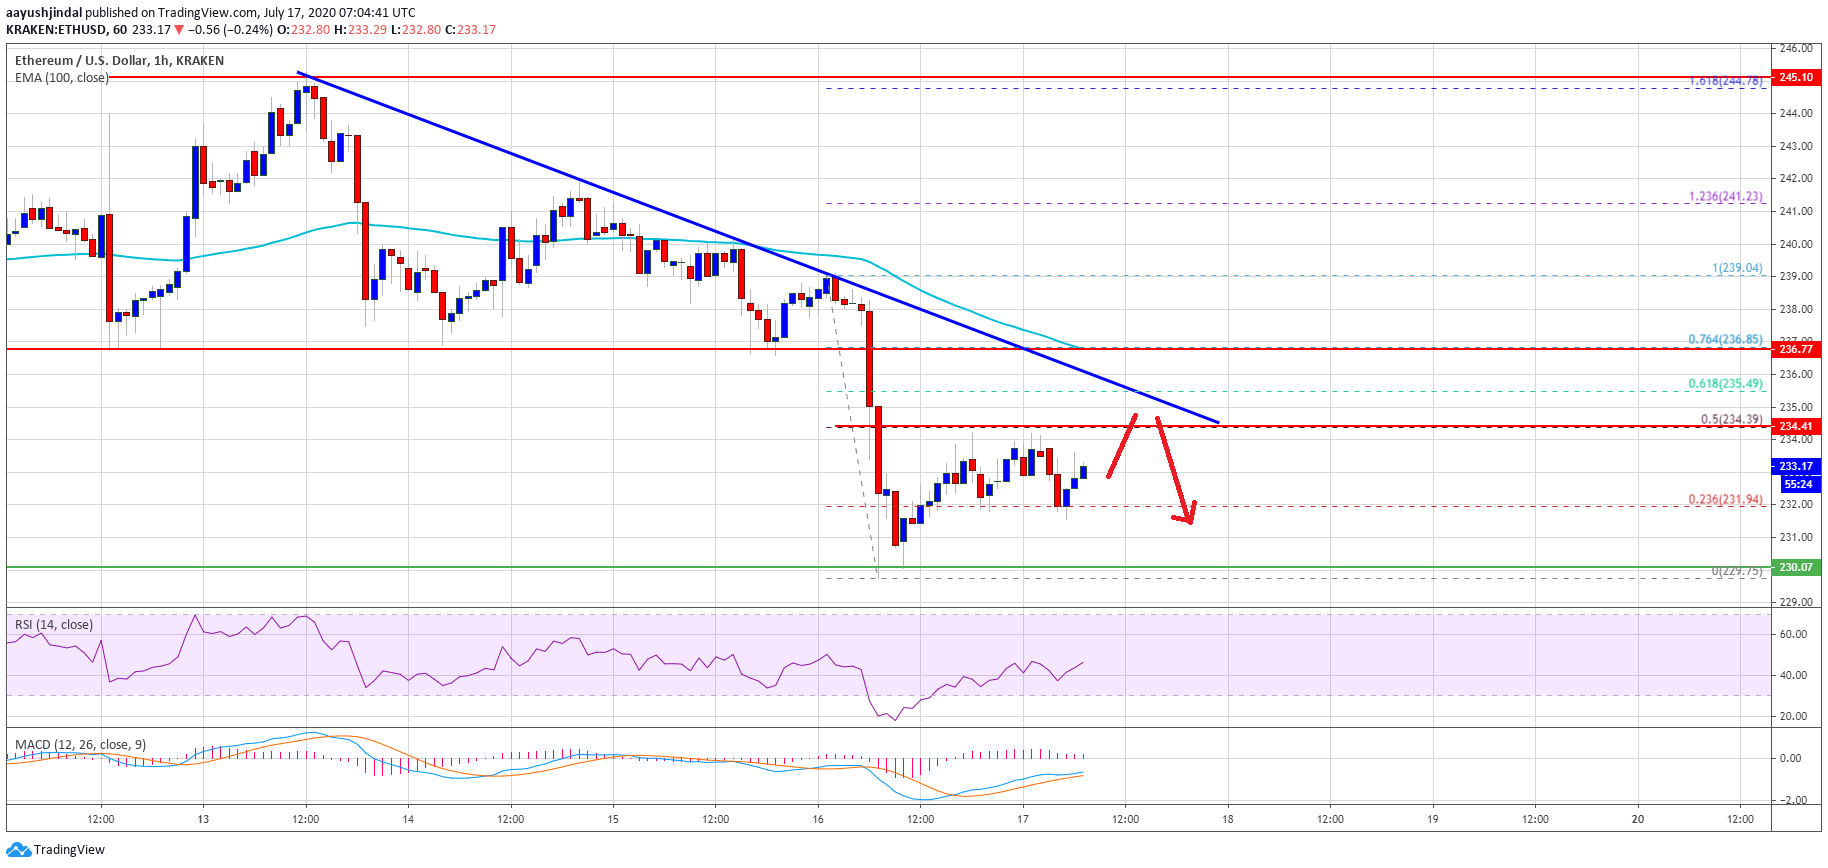 Ethereum Showing Early Signs of Strong Decline, But $230 Is The Key